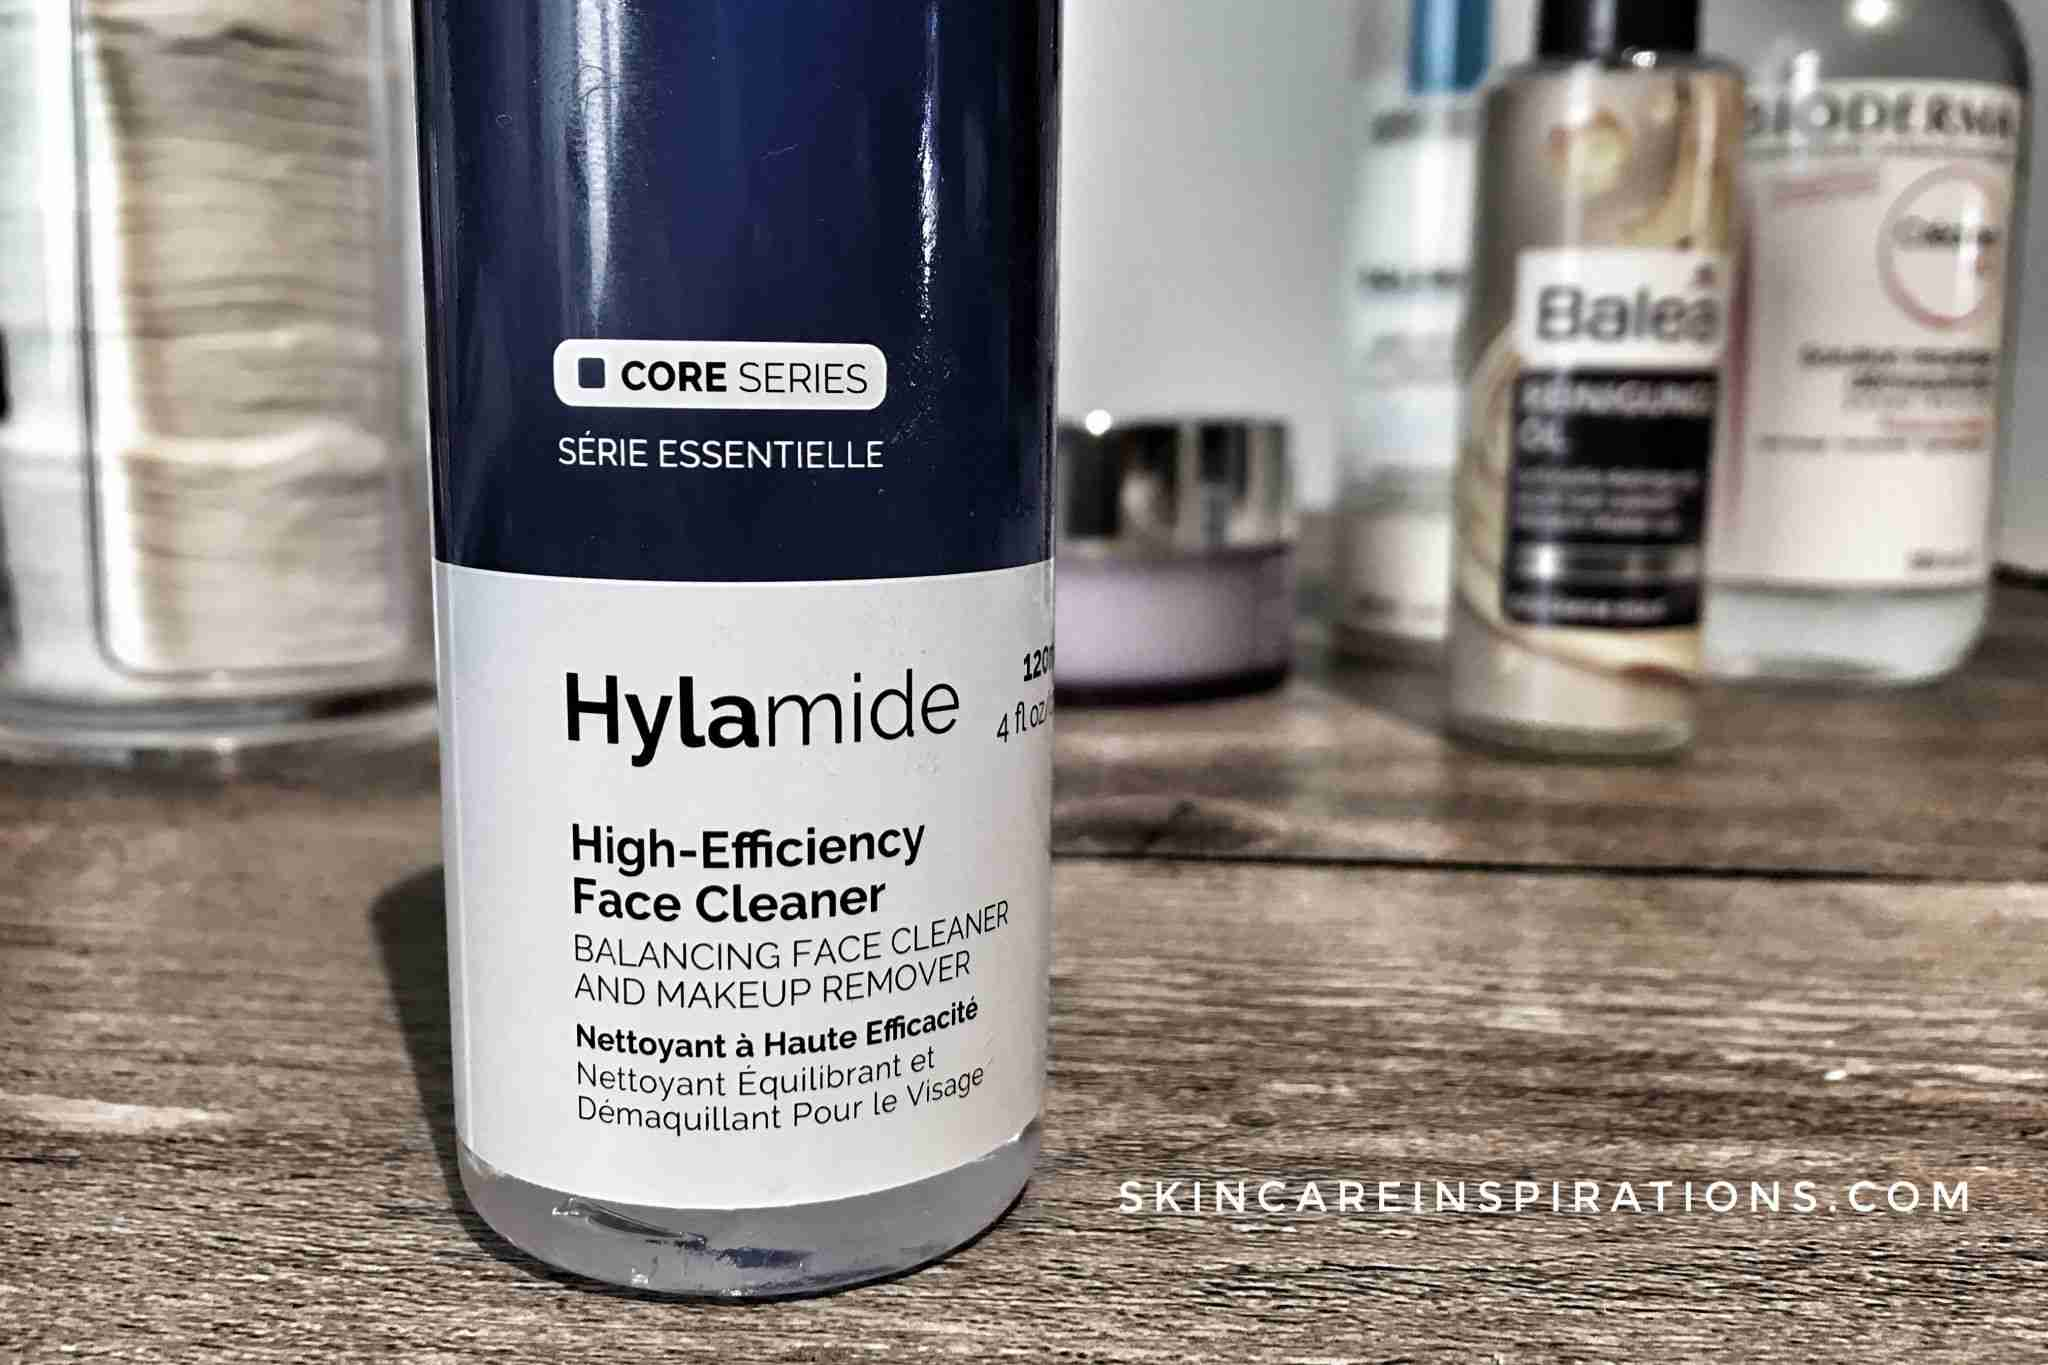 Rienigungsöle im Vergleich Hylamide High Efficiancy Oil copy